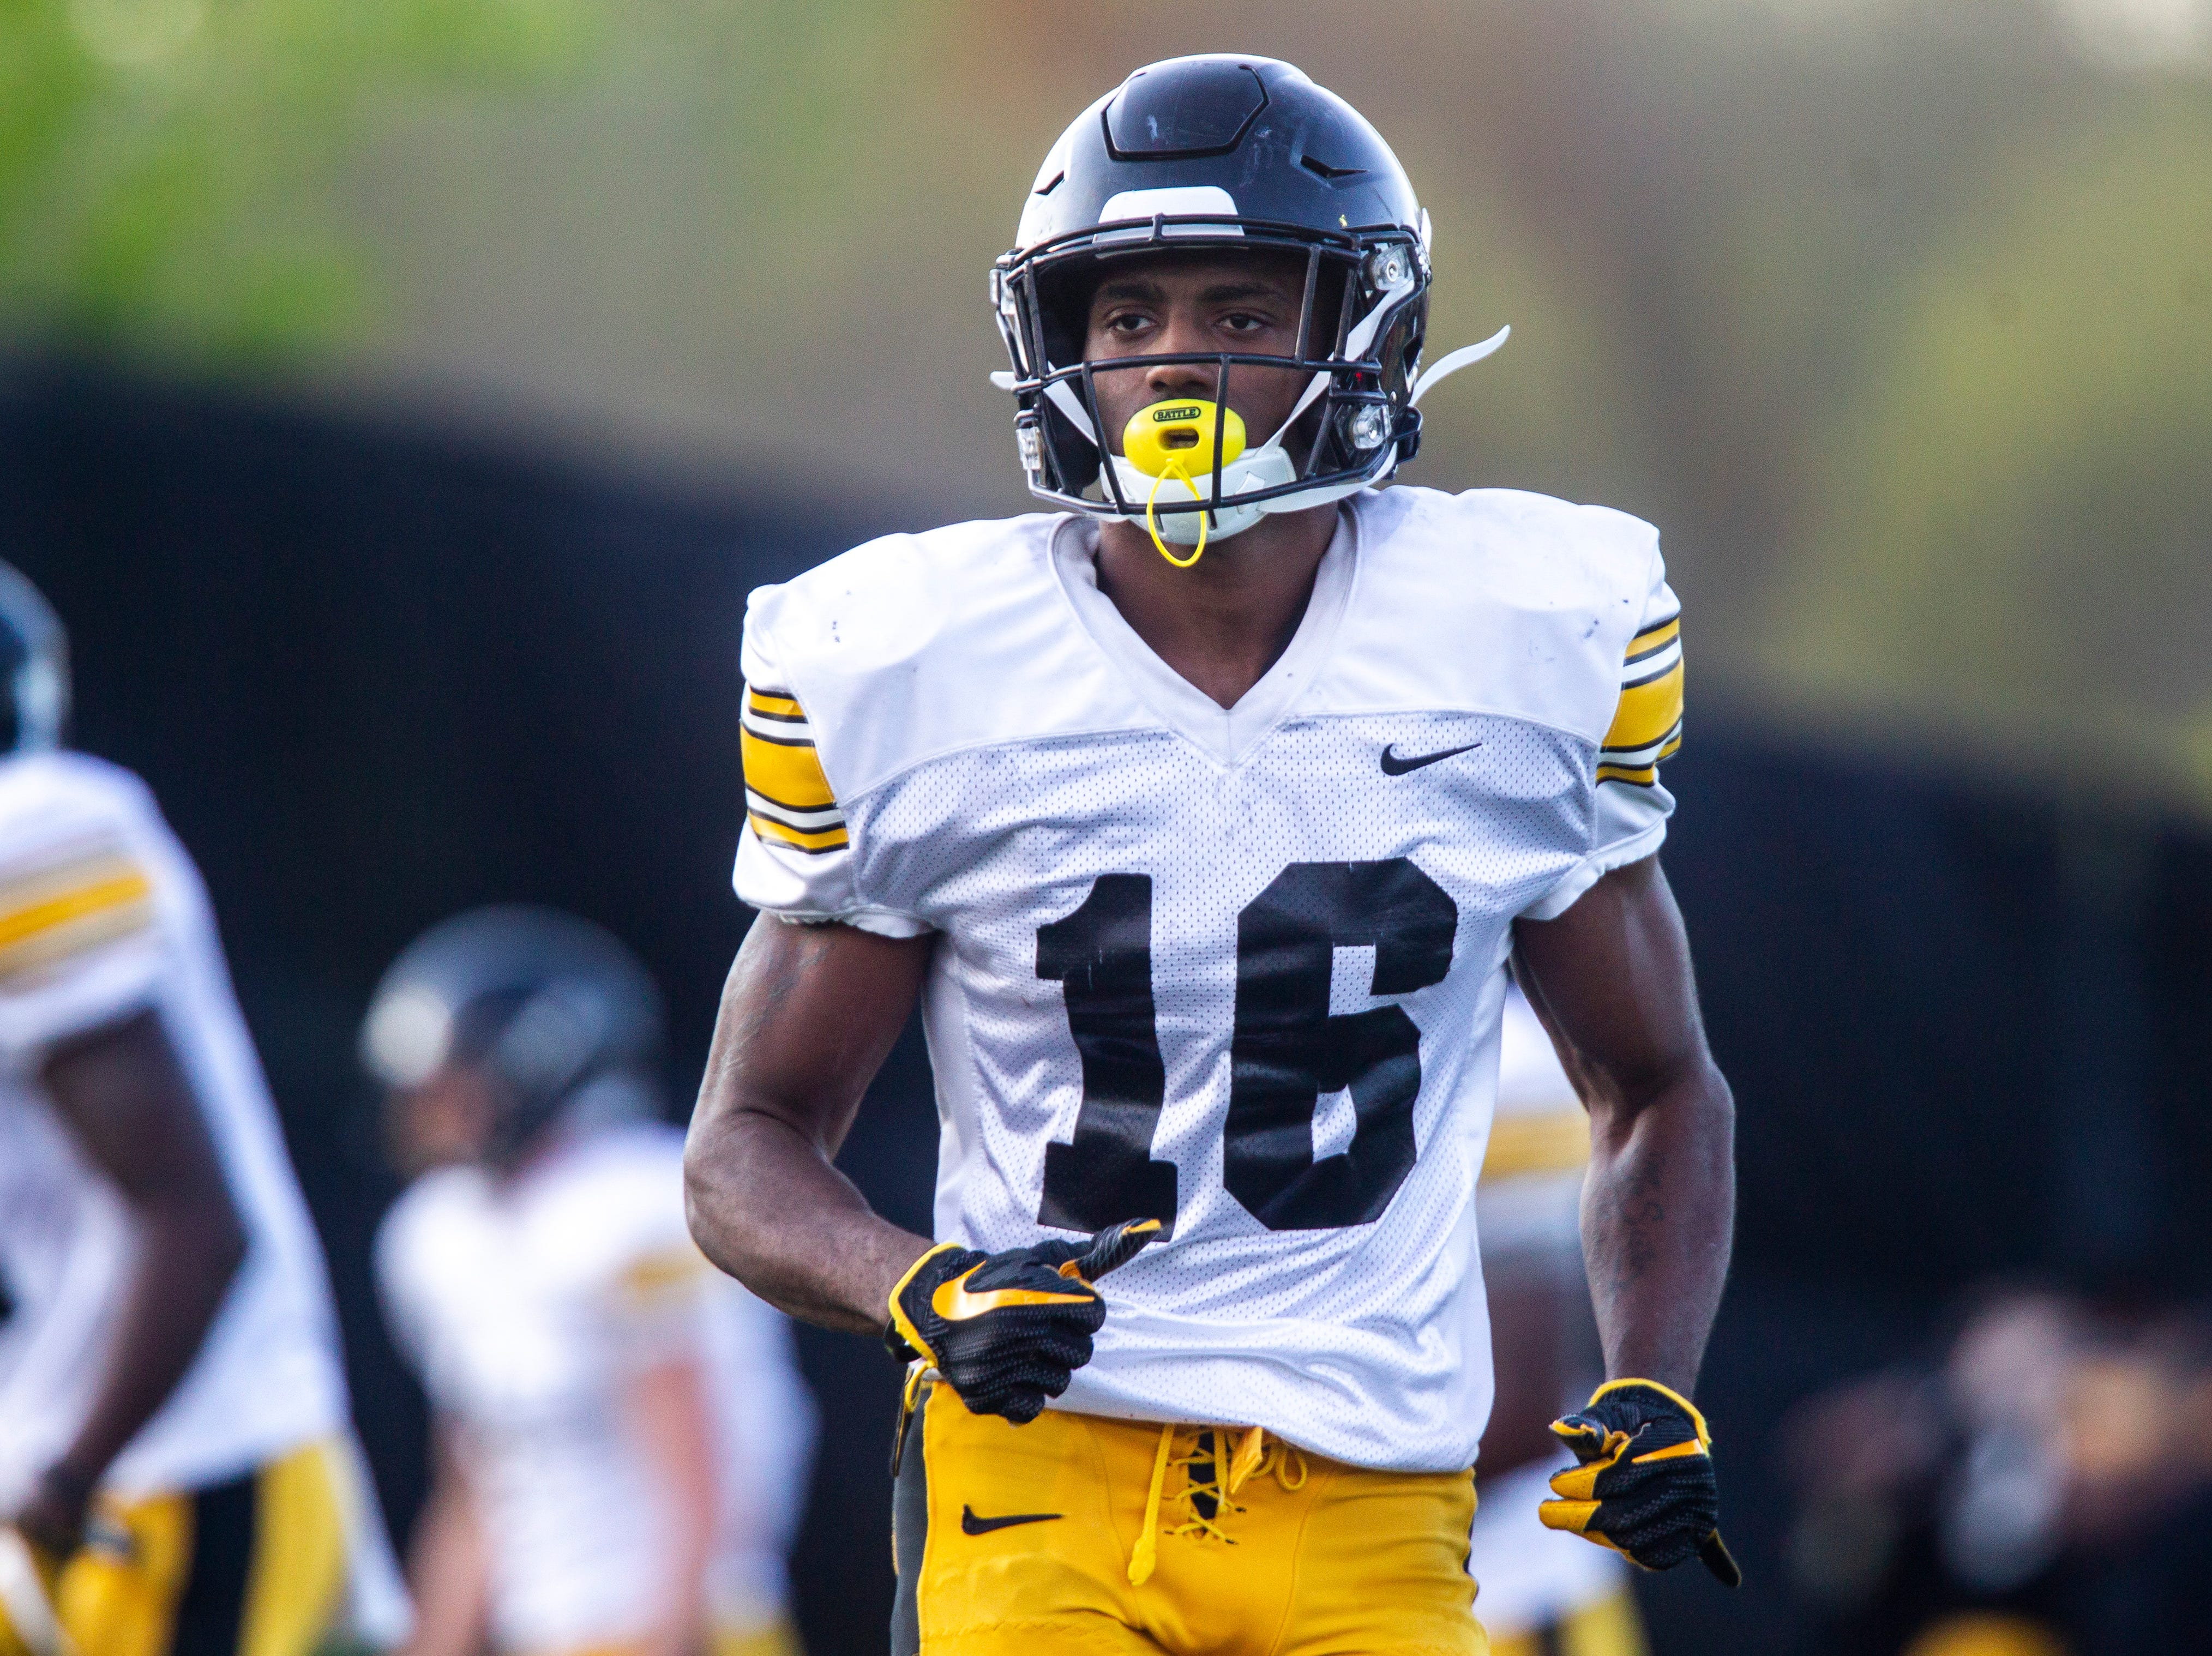 Iowa defensive back Terry Roberts (16) runs onto the field during the final spring football practice, Friday, April 26, 2019, at the University of Iowa outdoor practice facility in Iowa City, Iowa.